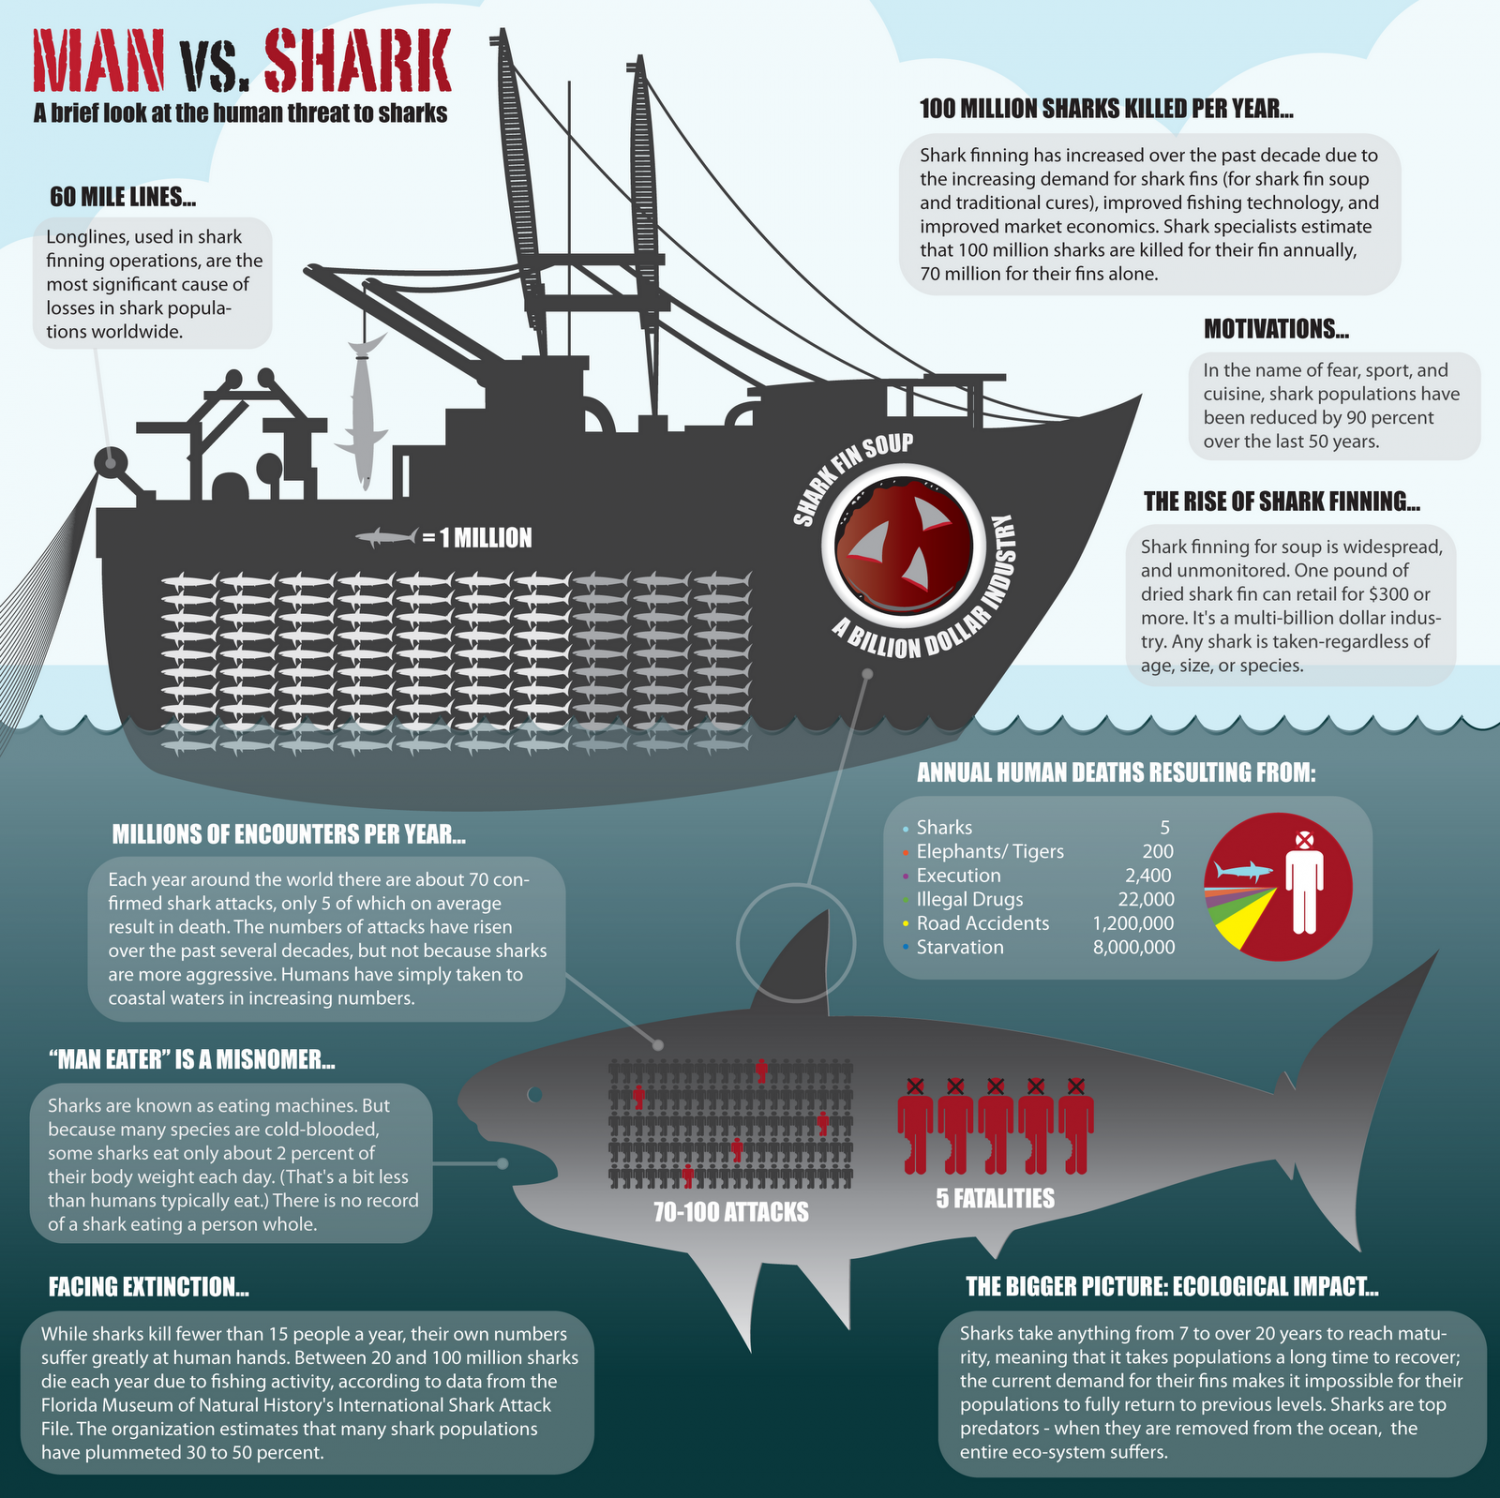 Man vs. Shark Infographic